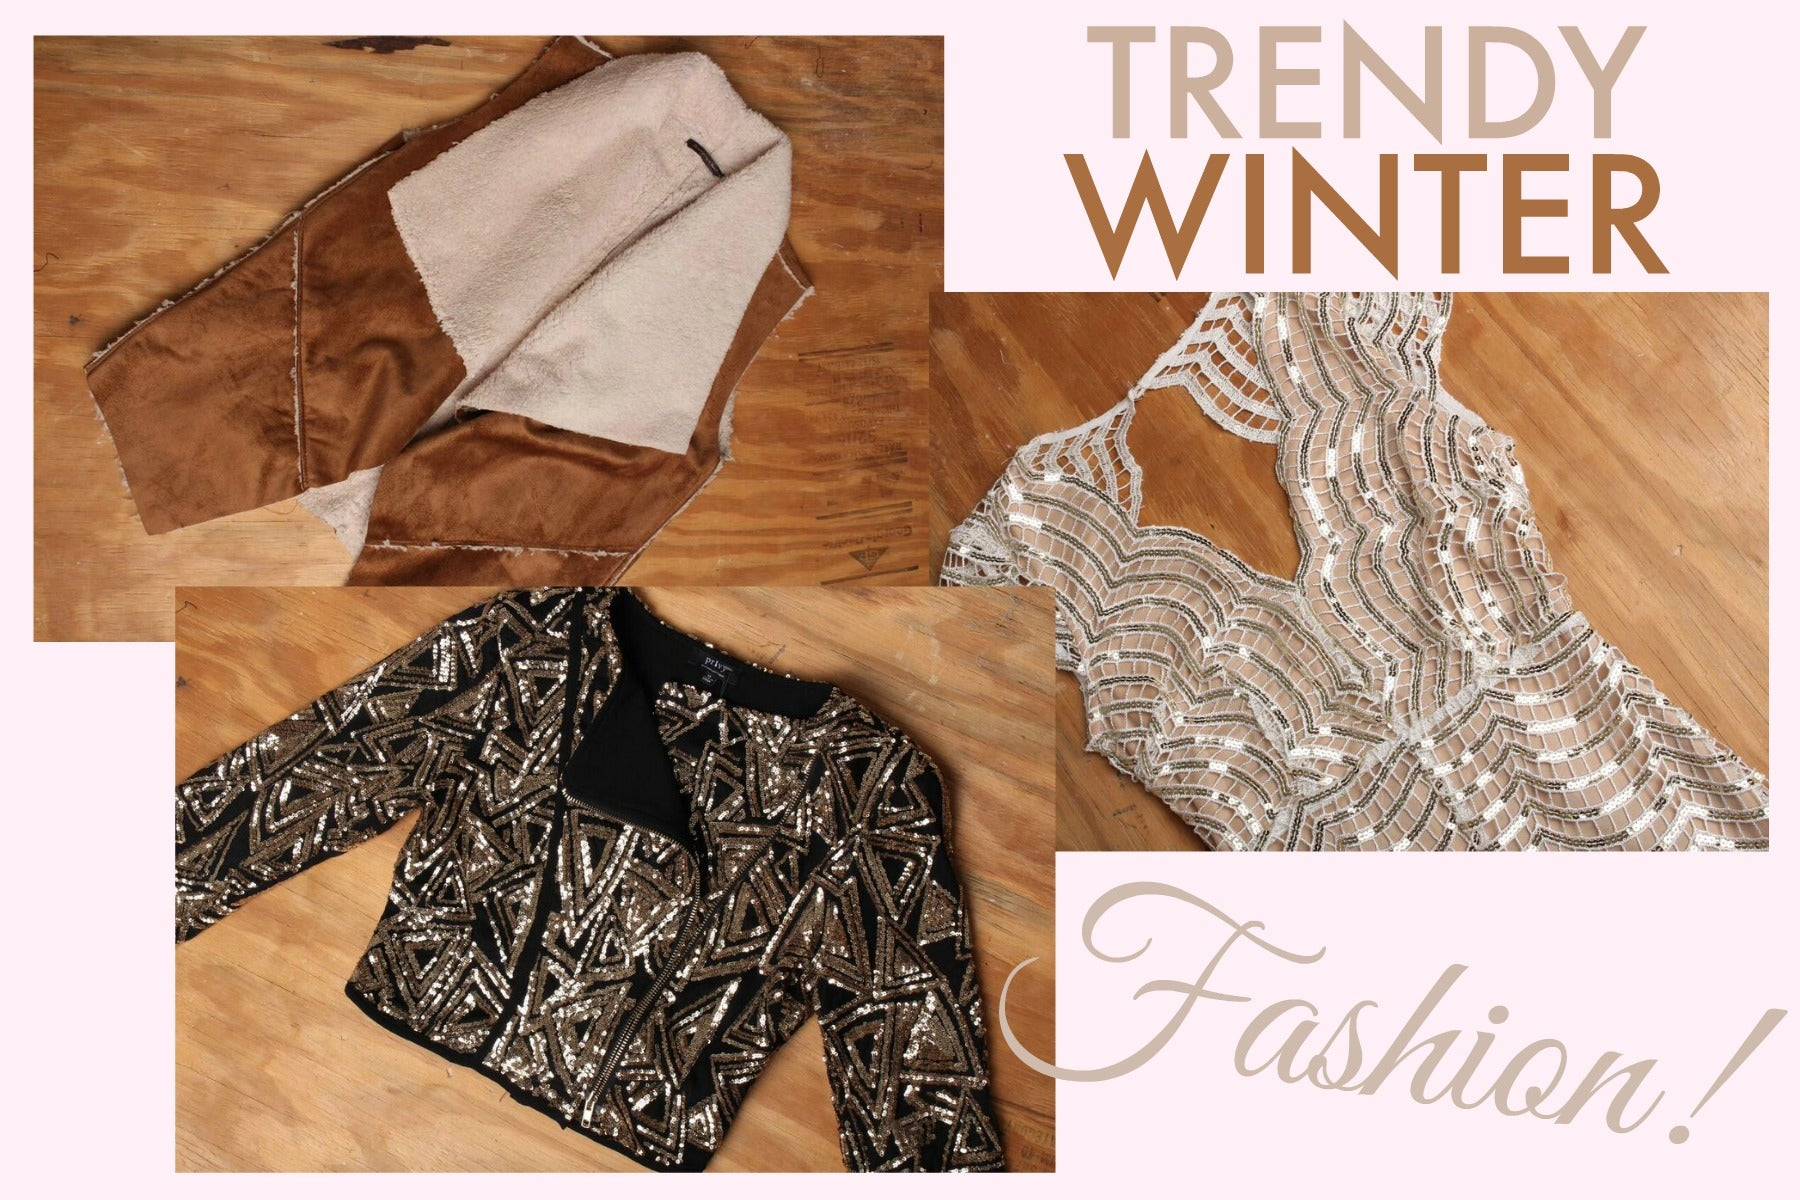 093b1f676d00f The winter is here and so is our new fashion from Mystique Boutique! Be  sure to shop online and in store to check out all our holiday favorites. We  have a ...